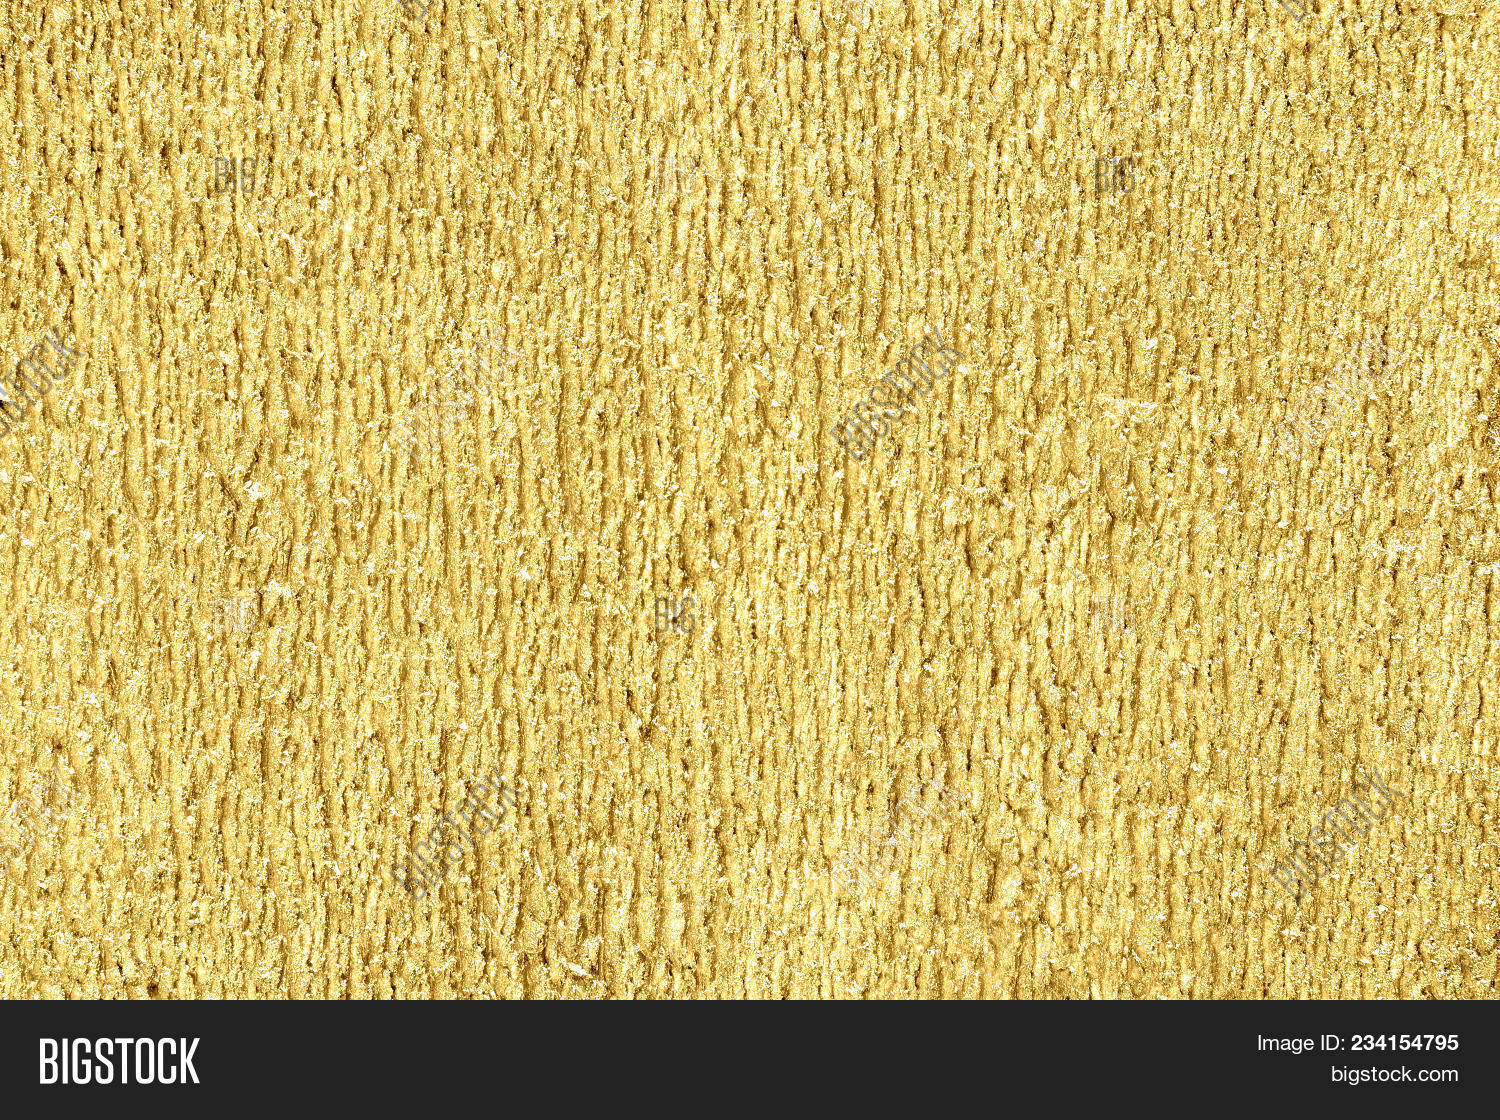 abstract shiny golden image photo free trial bigstock